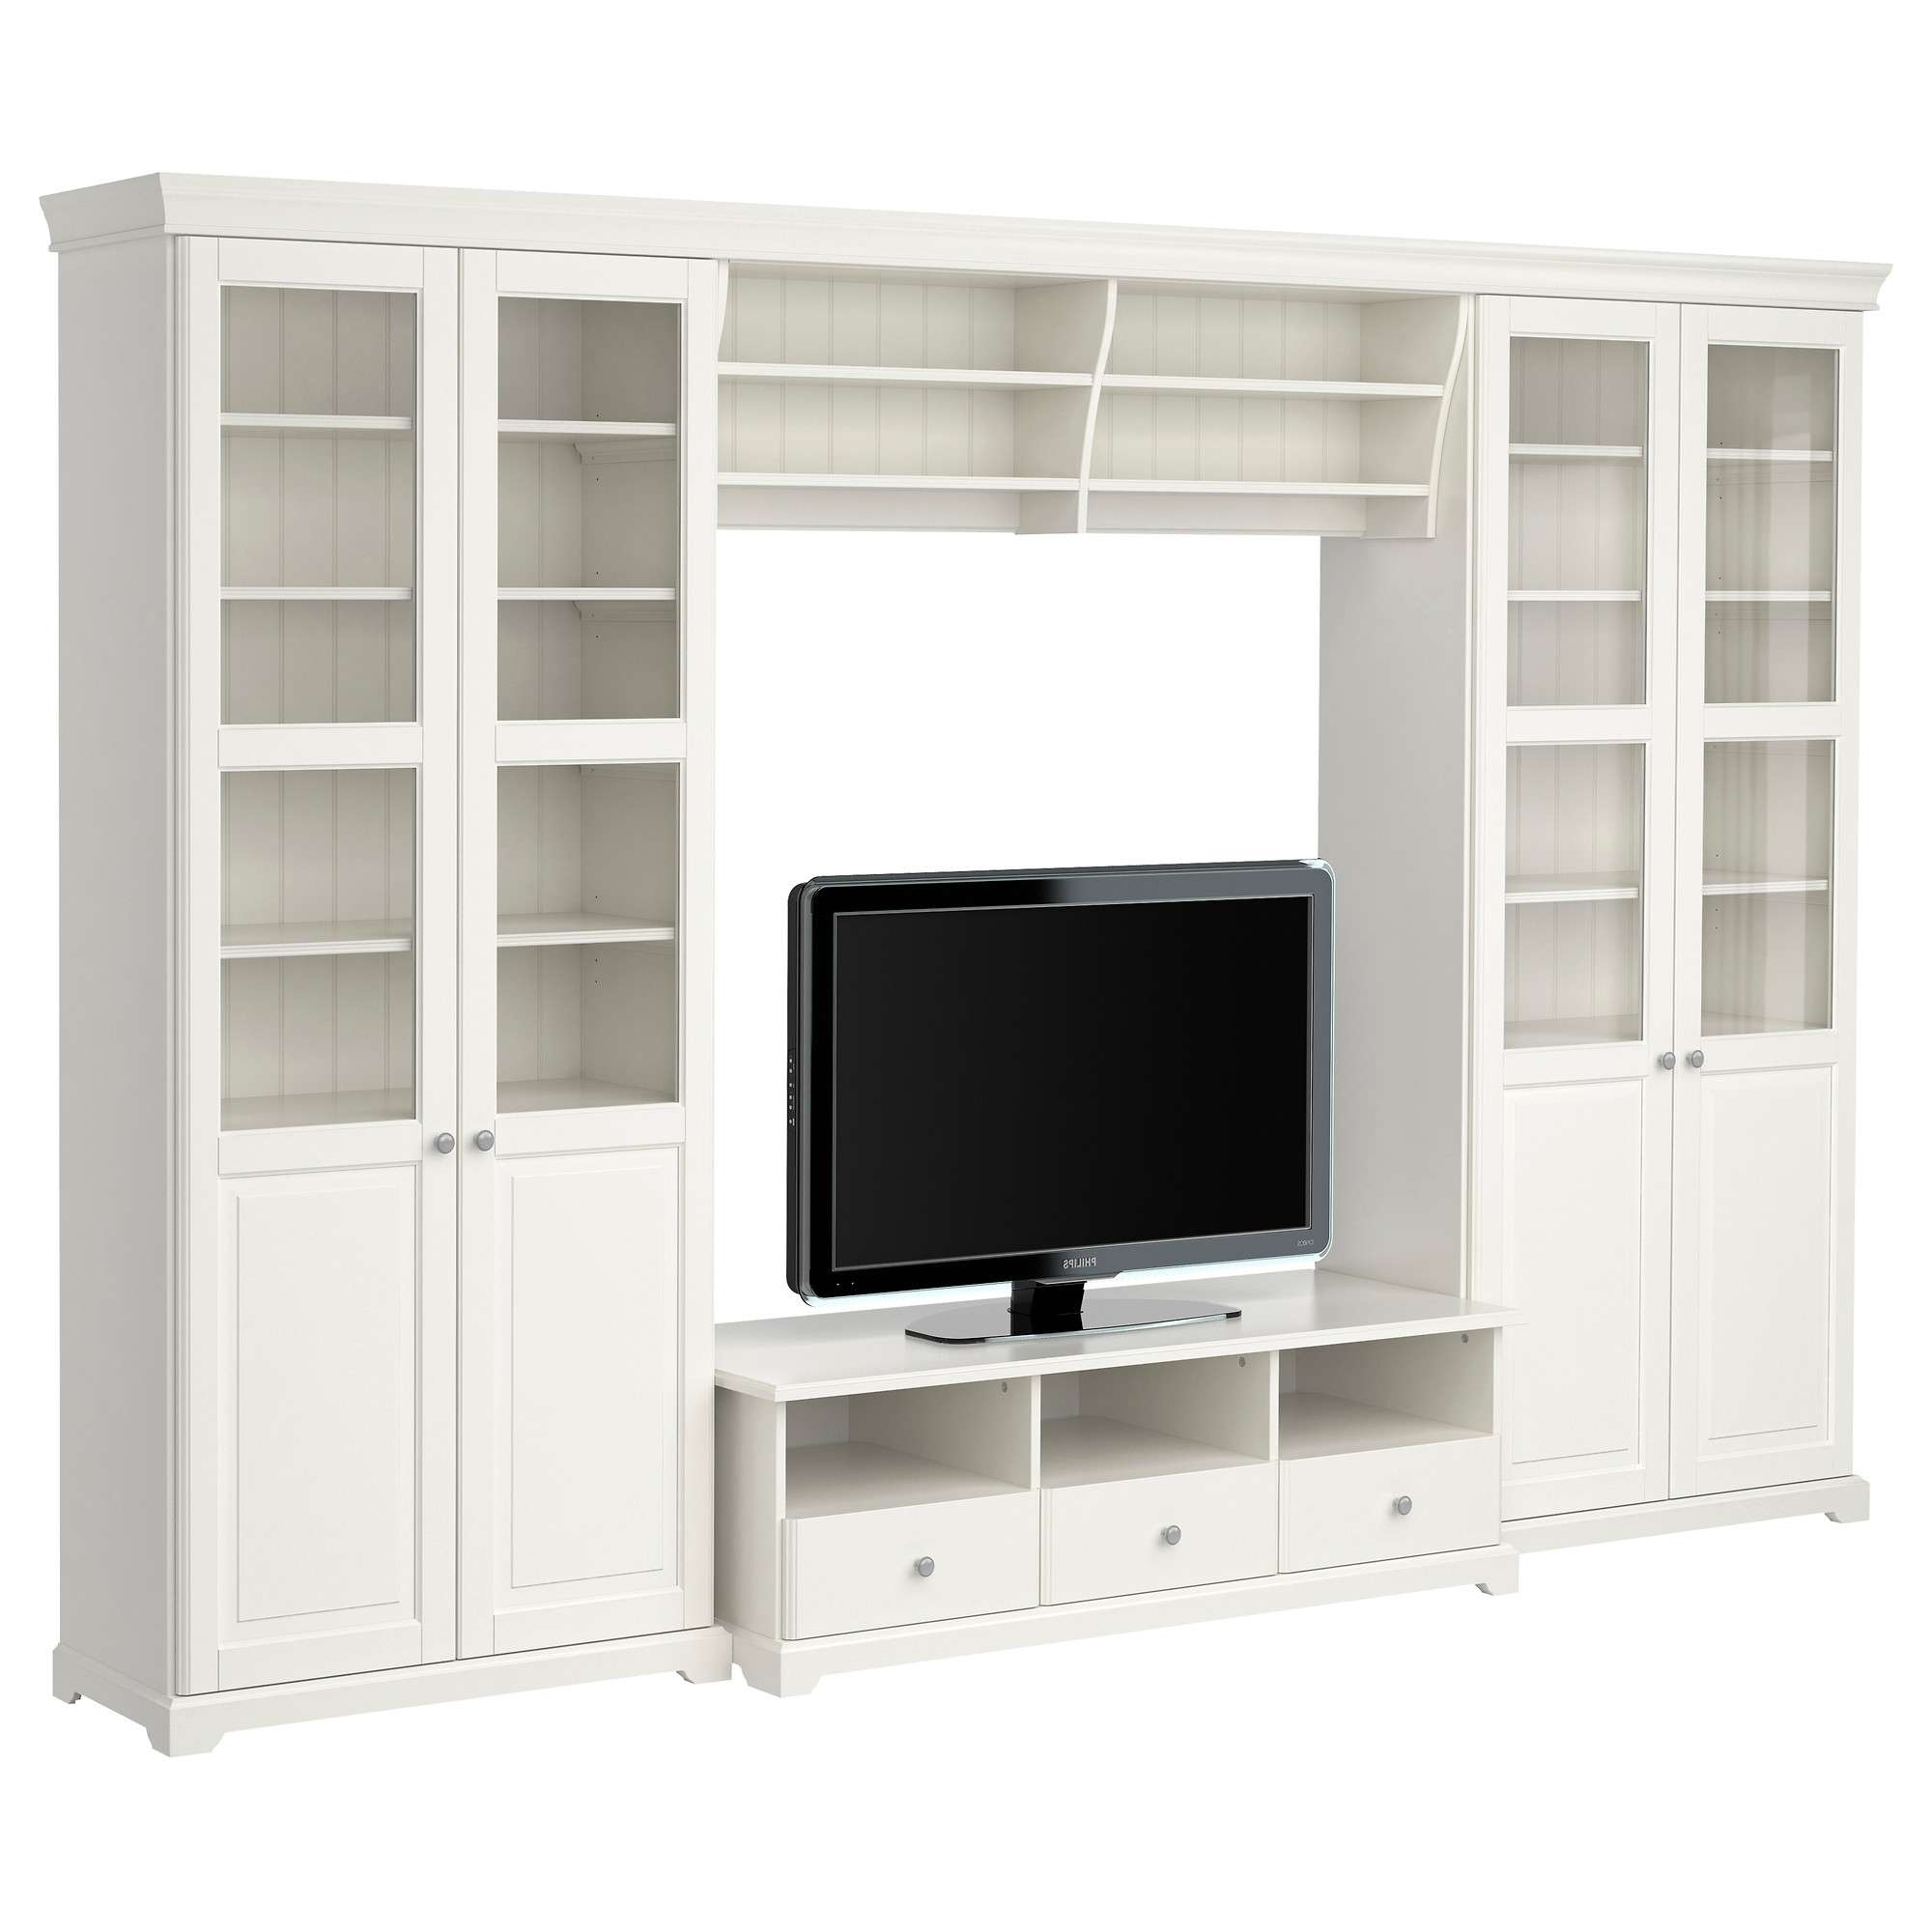 Liatorp Tv Storage Combination – Ikea In Ikea Built In Tv Cabinets (View 12 of 20)